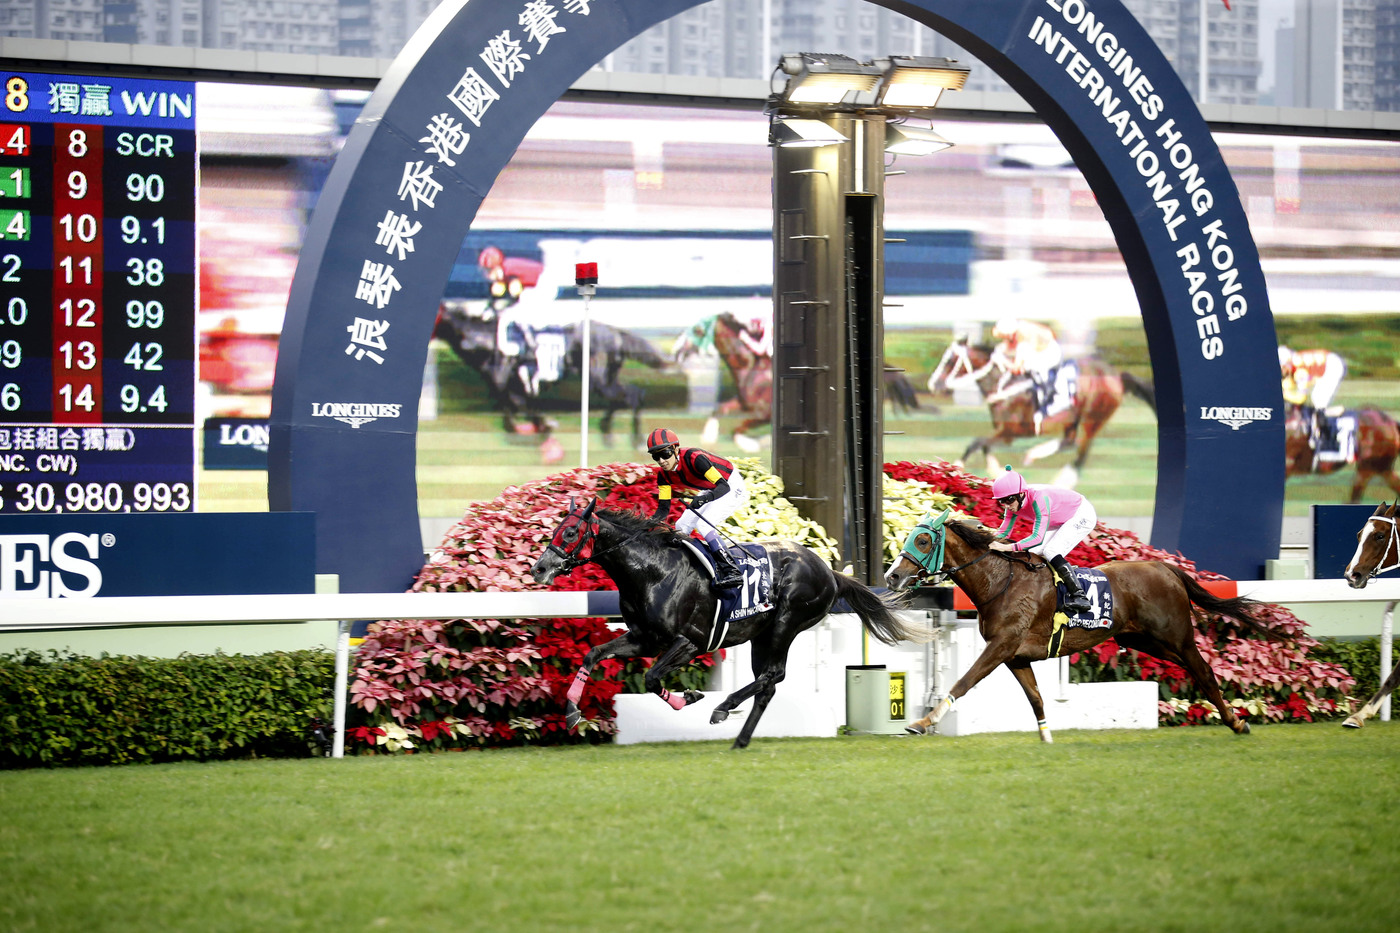 Longines Flat Racing Event: Longines Hong Kong International Races – a competitive climax of the horse racing calendar 2